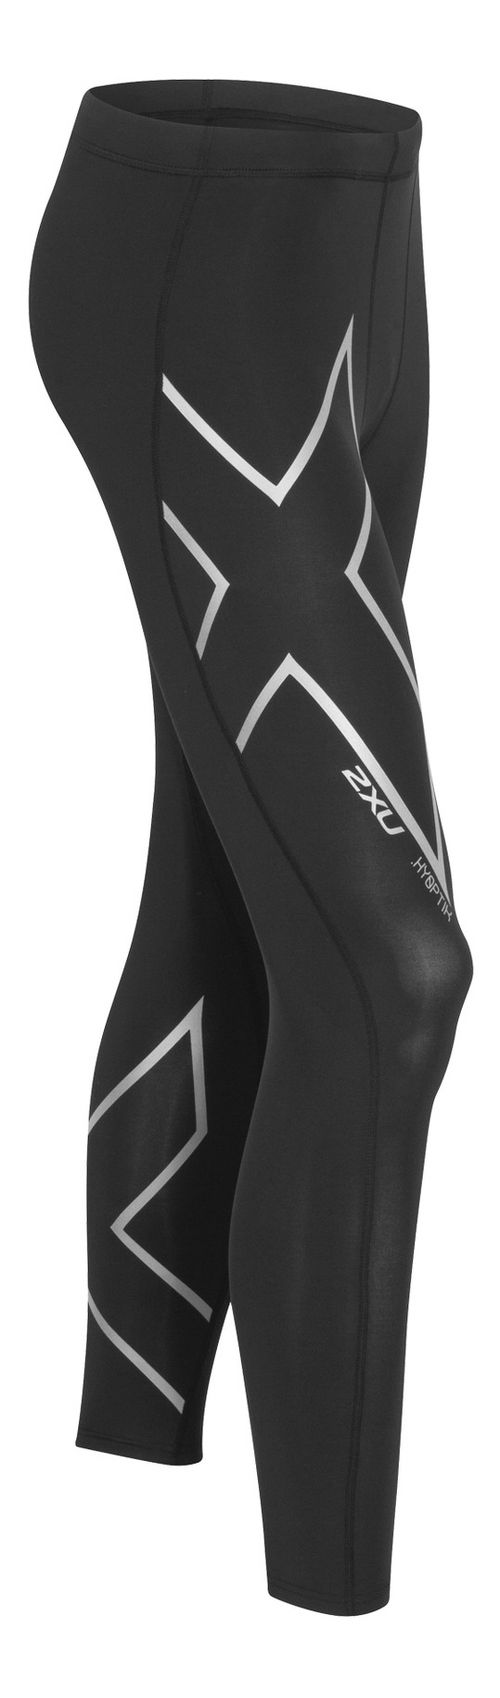 Mens 2XU Hyoptik Compression Tights & Leggings Pants - Black/Silver M